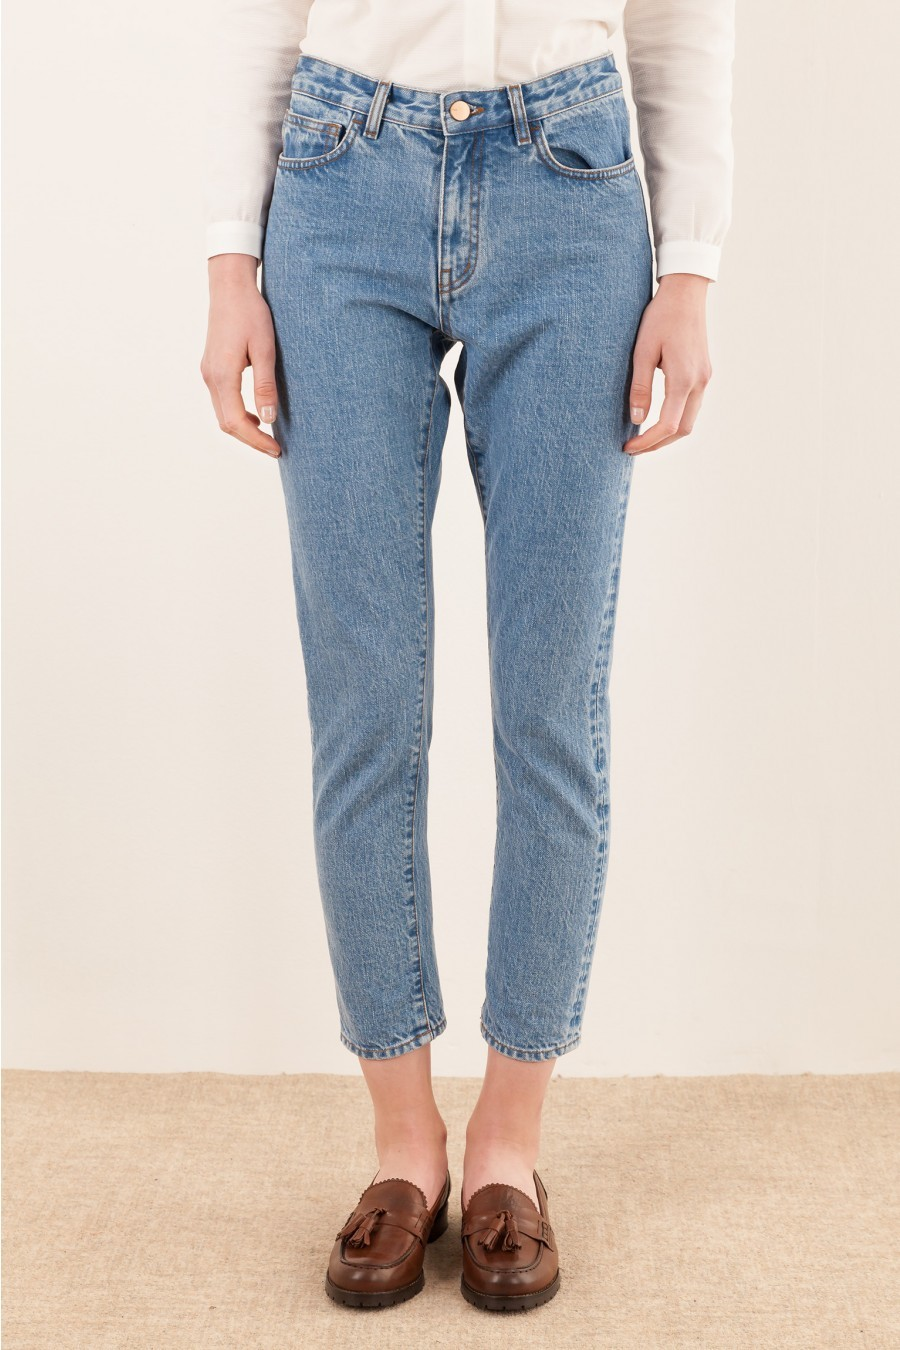 light color selvage jeans